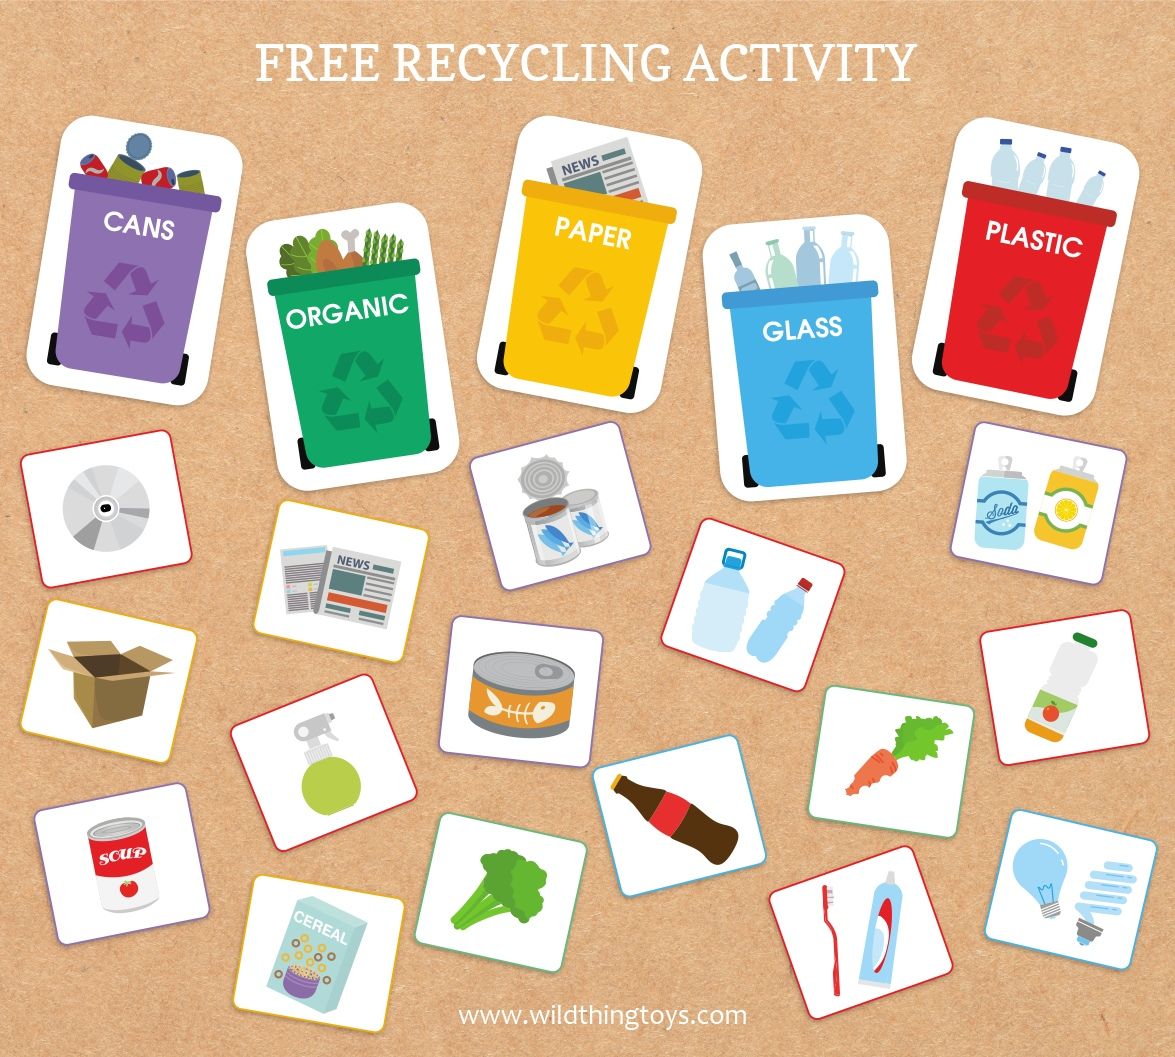 A Fun Printable Activity And Recycling Game To Help Your